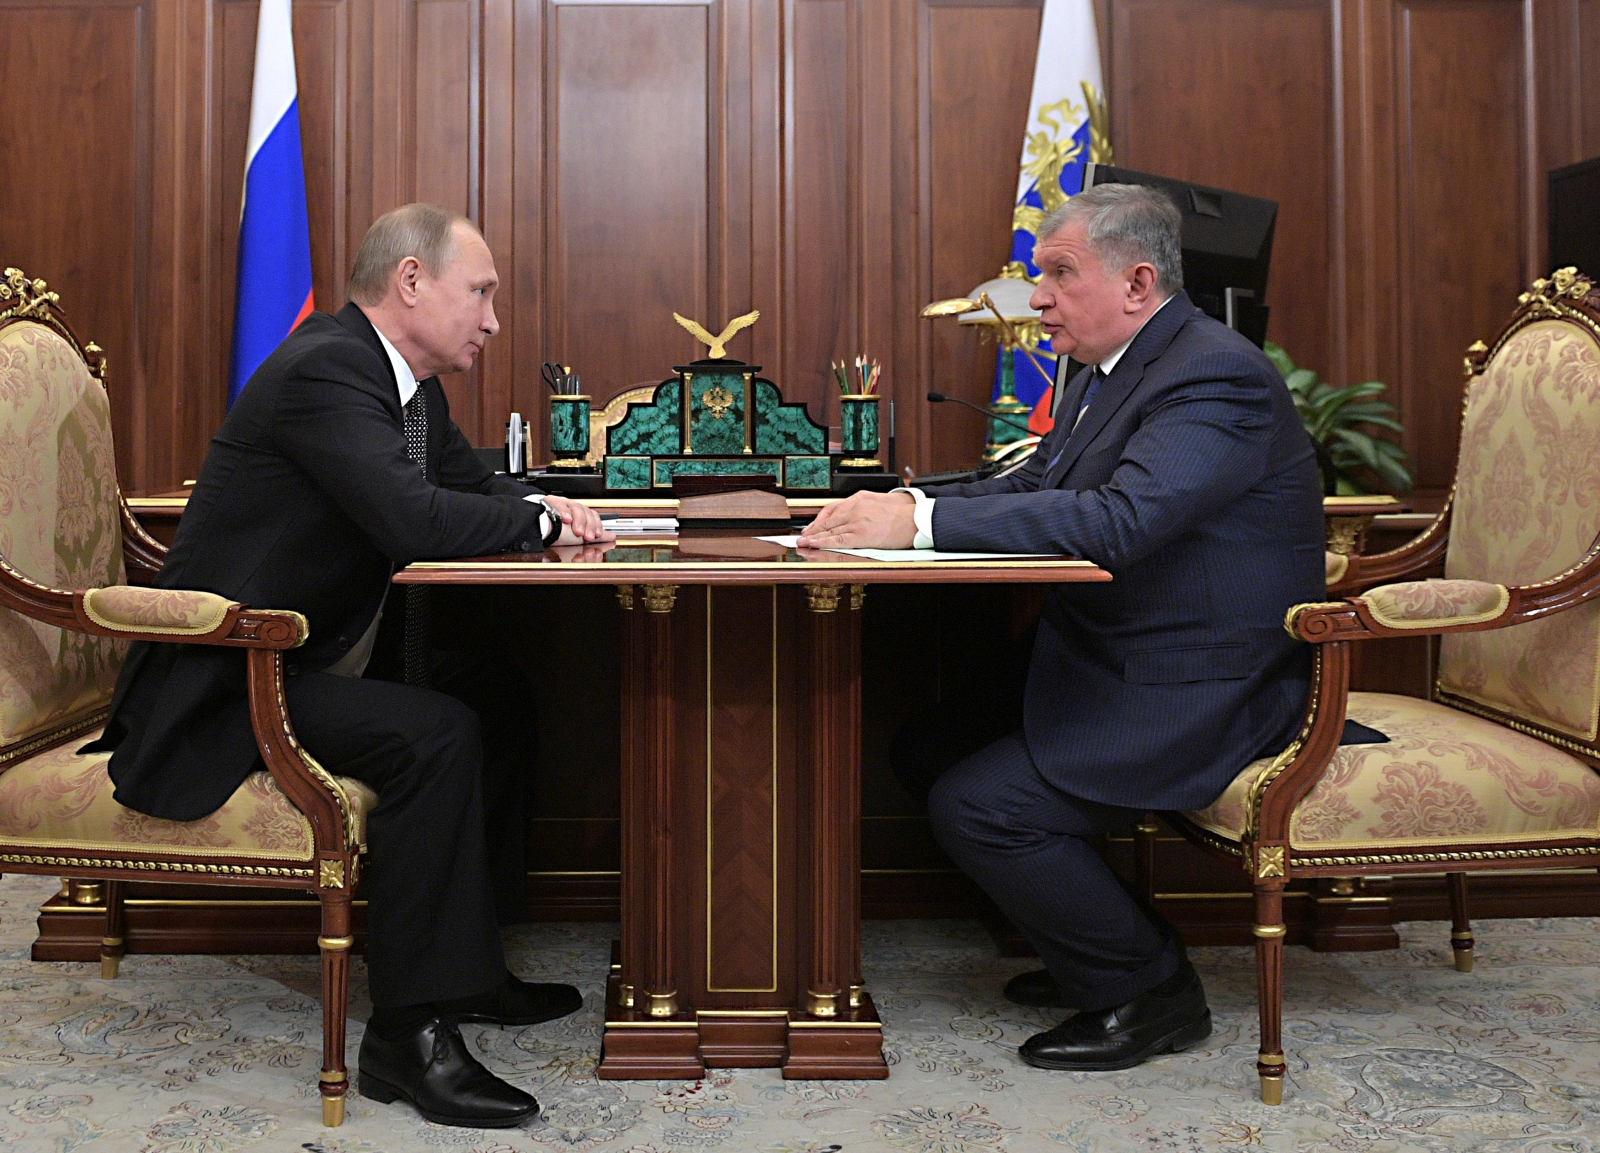 Russia to sell 19.5% stake in Rosneft to Glencore and Qatar Investment Authority for €10.2bn